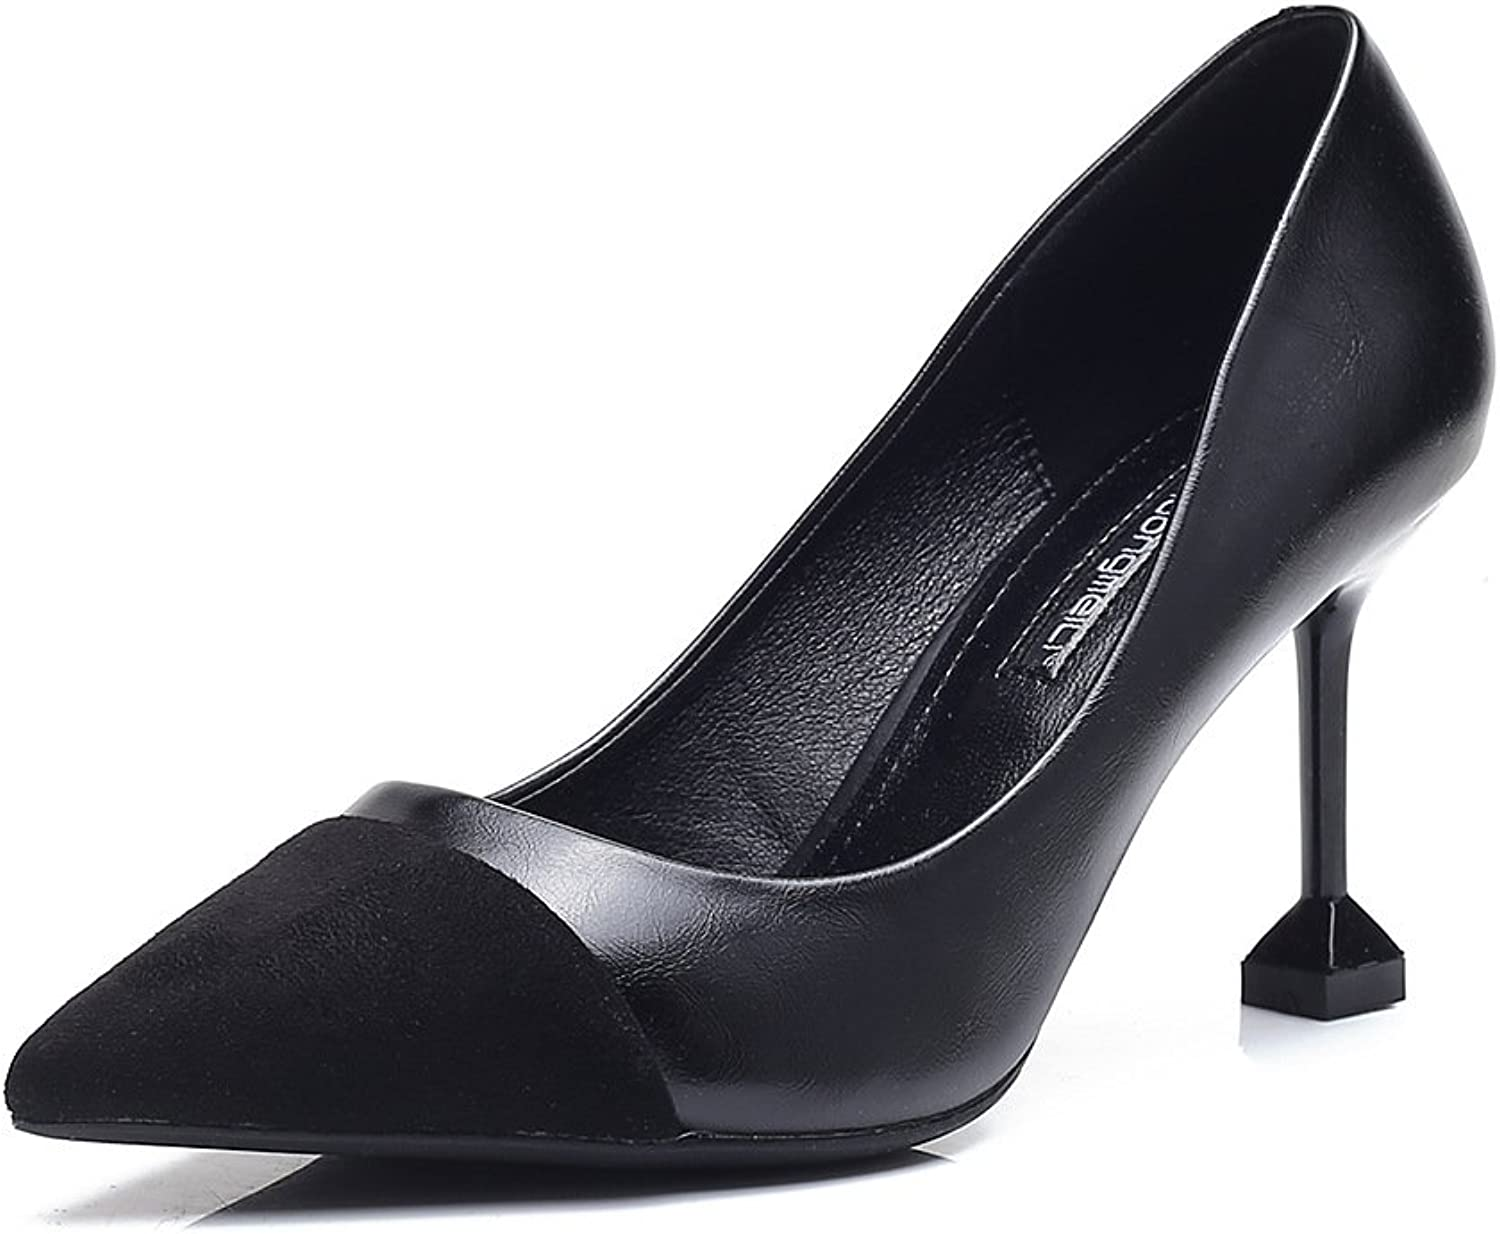 Meiren High Heels Pointed Stiletto Single shoes Women's shoes